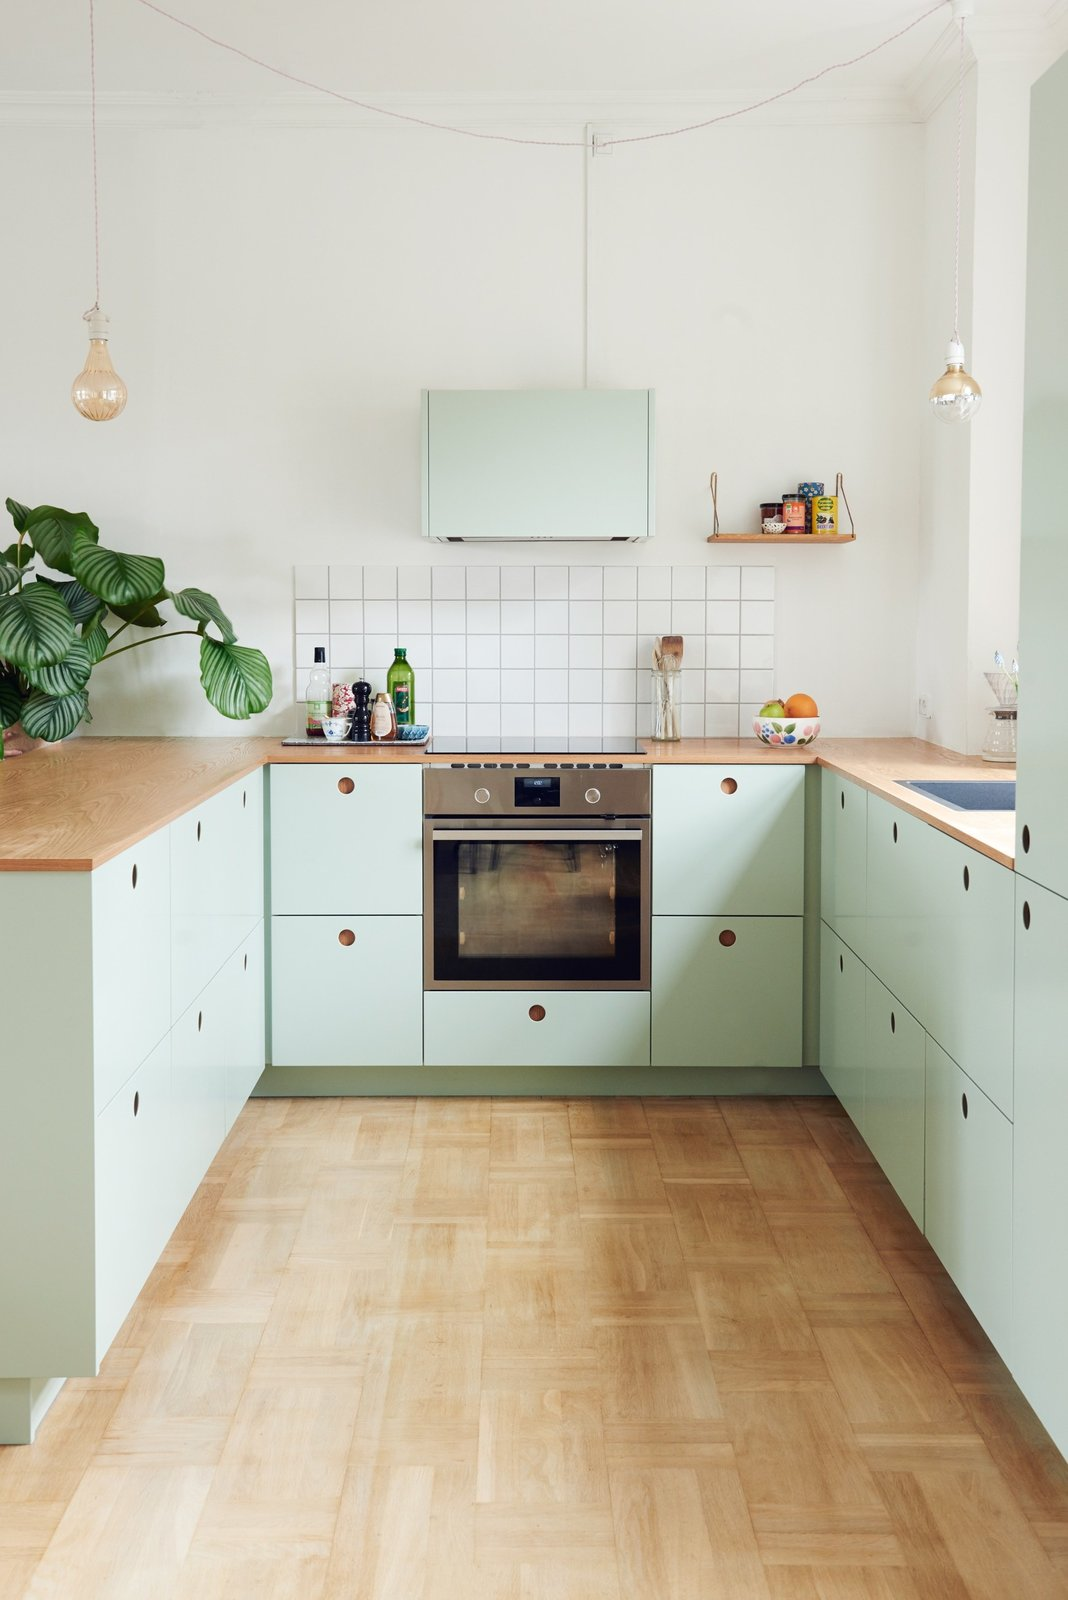 Kitchen, Wood Counter, Light Hardwood Floor, Pendant Lighting, Subway Tile Backsplashe, Wall Oven, Range Hood, Drop In Sink, Colorful Cabinet, and Cooktops Danish blogger, Tikkie Elsøe, chose mint green  Best Photos from Modern Kitchen Upgrade Ideas From a Danish Design Firm That's Challenging the Kitchen Market